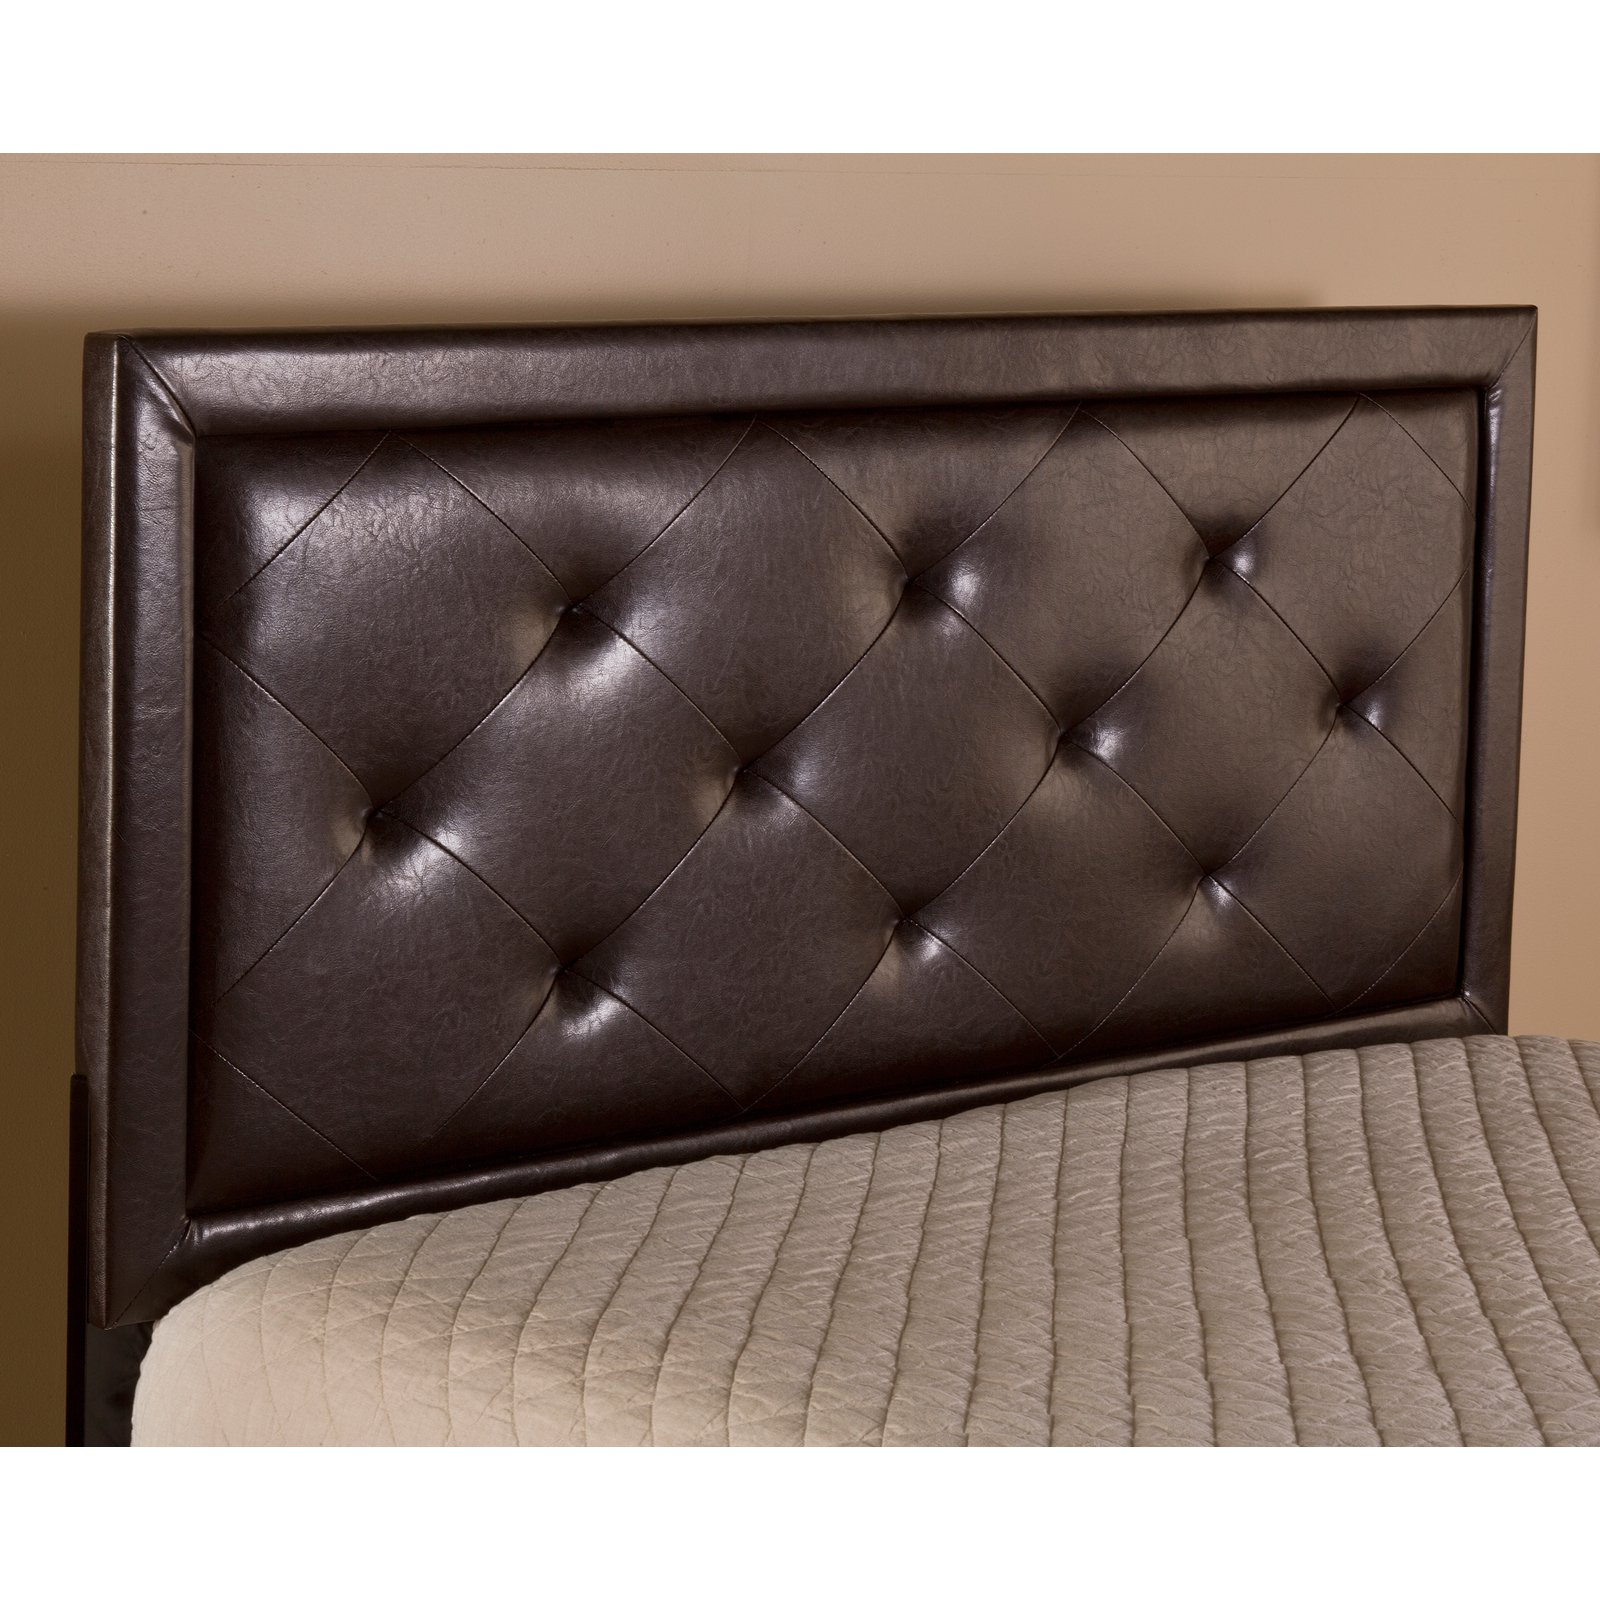 Hillsdale Furniture Becker Full Headboard with Bedframe, Brown Faux Leather